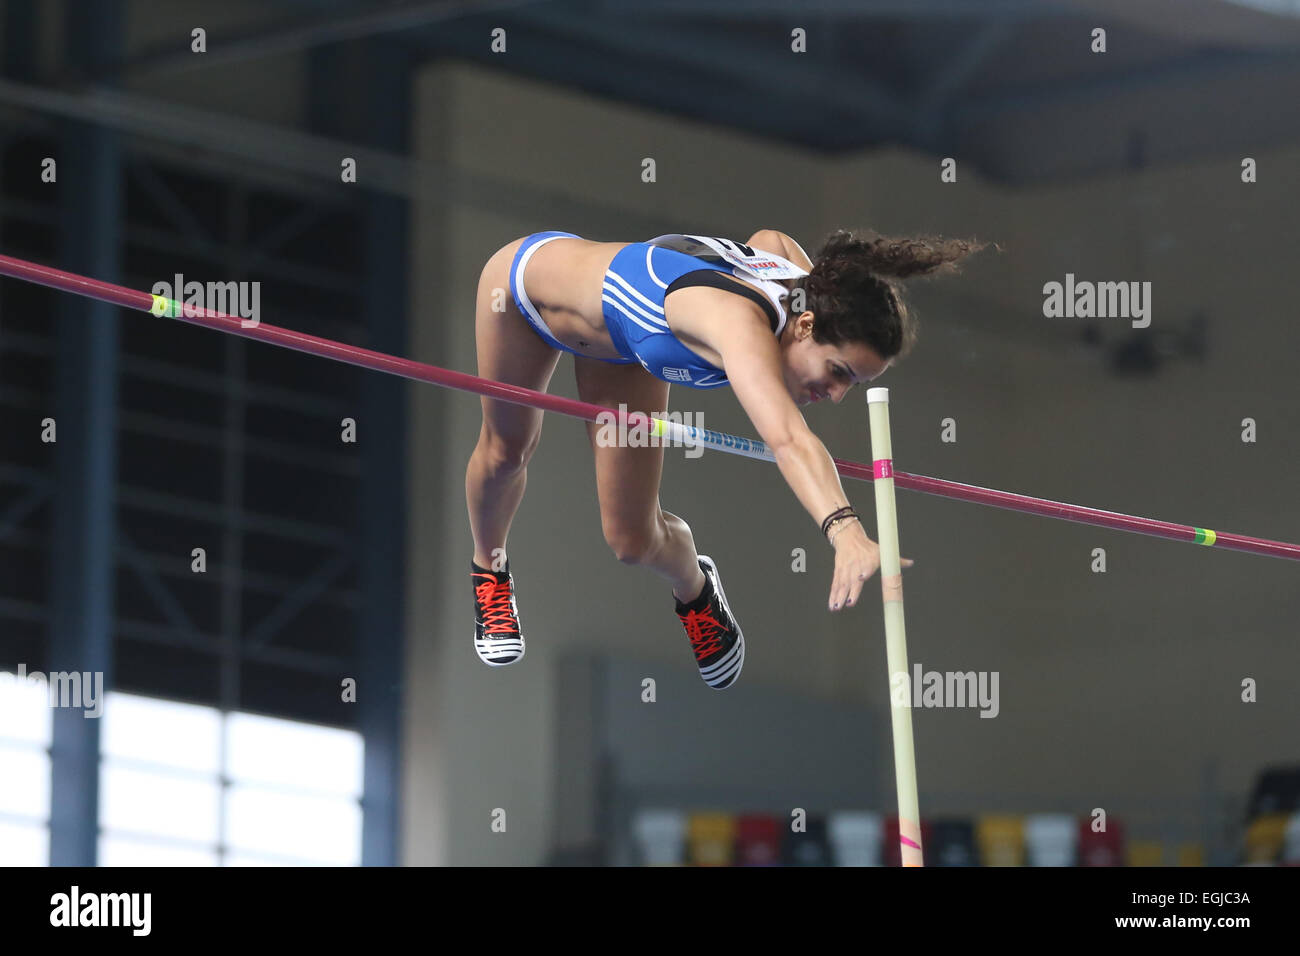 ISTANBUL, TURKEY - FEBRUARY 21, 2015: Greek athlete Stela Iro Ledaki pole vaulting during Balkan Athletics Indoor - Stock Image